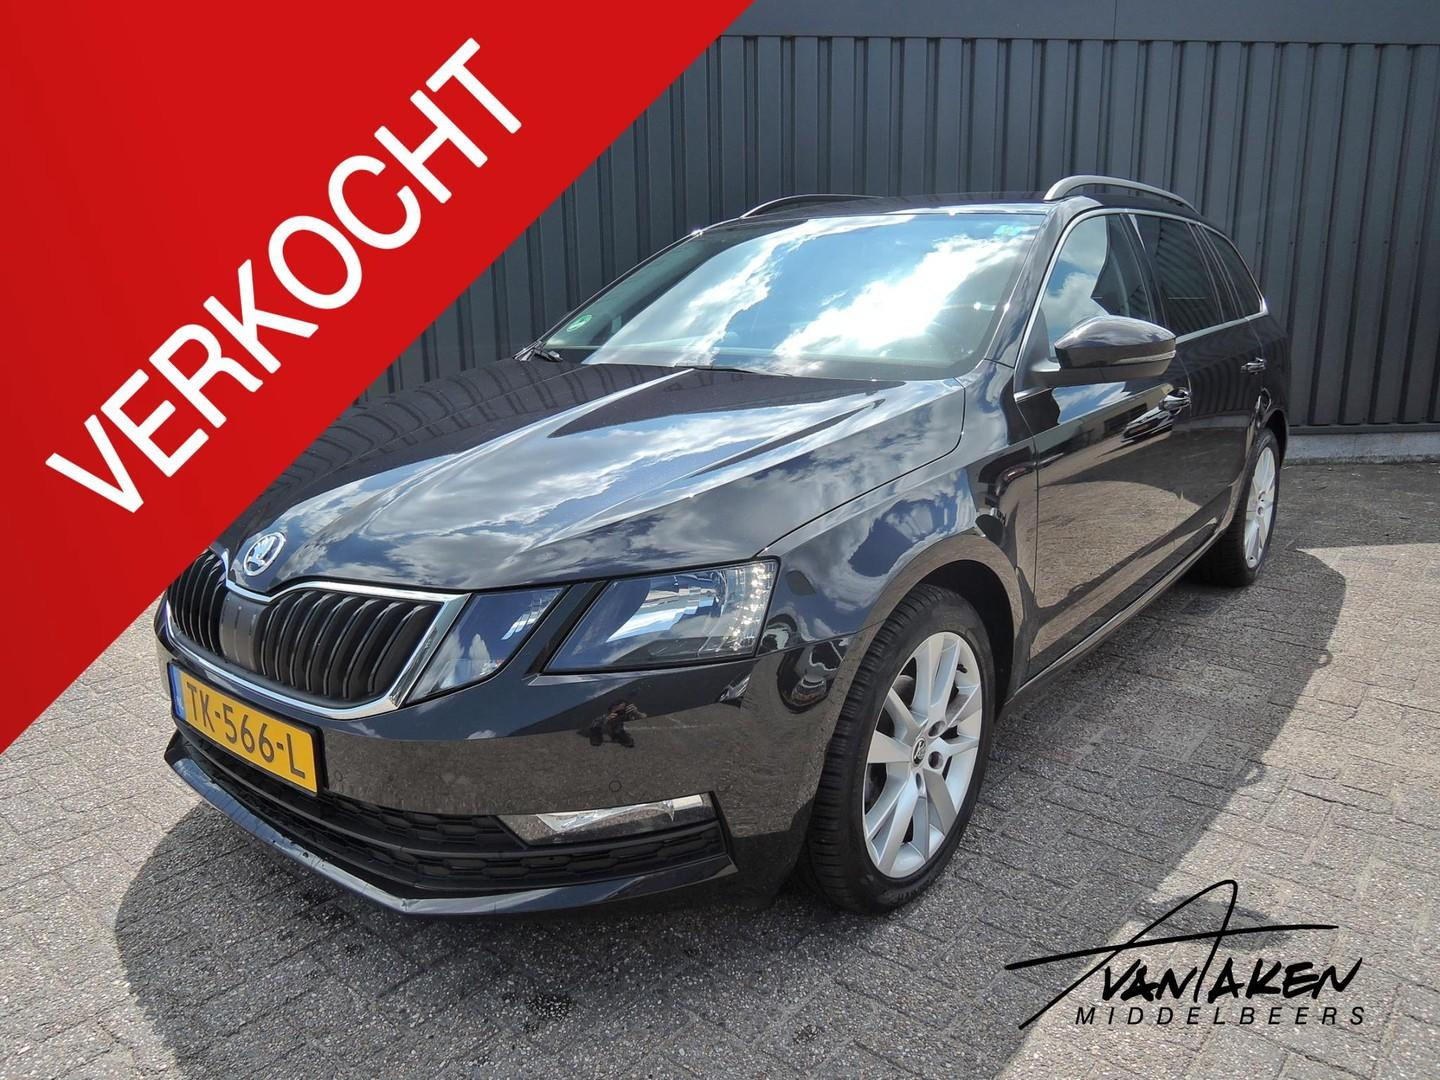 Škoda Octavia Combi 1.6 tdi greentech ambition business